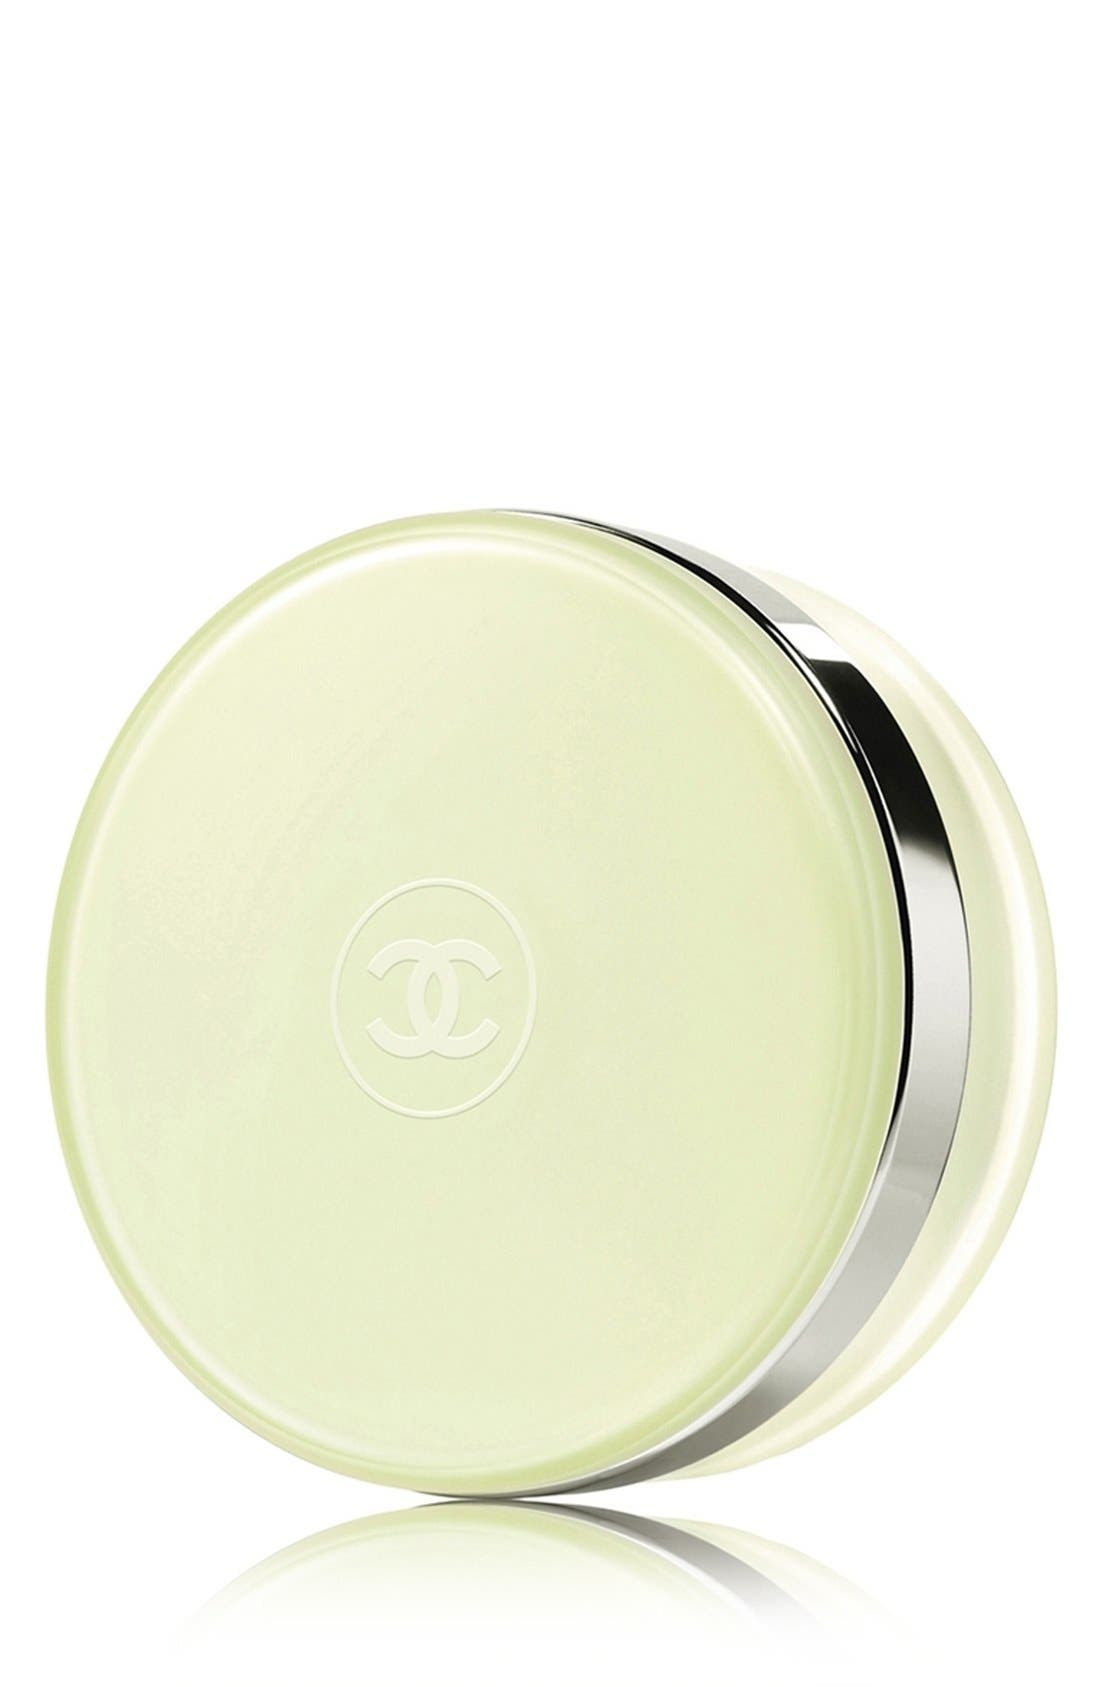 CHANEL CHANCE EAU FRAÎCHE 